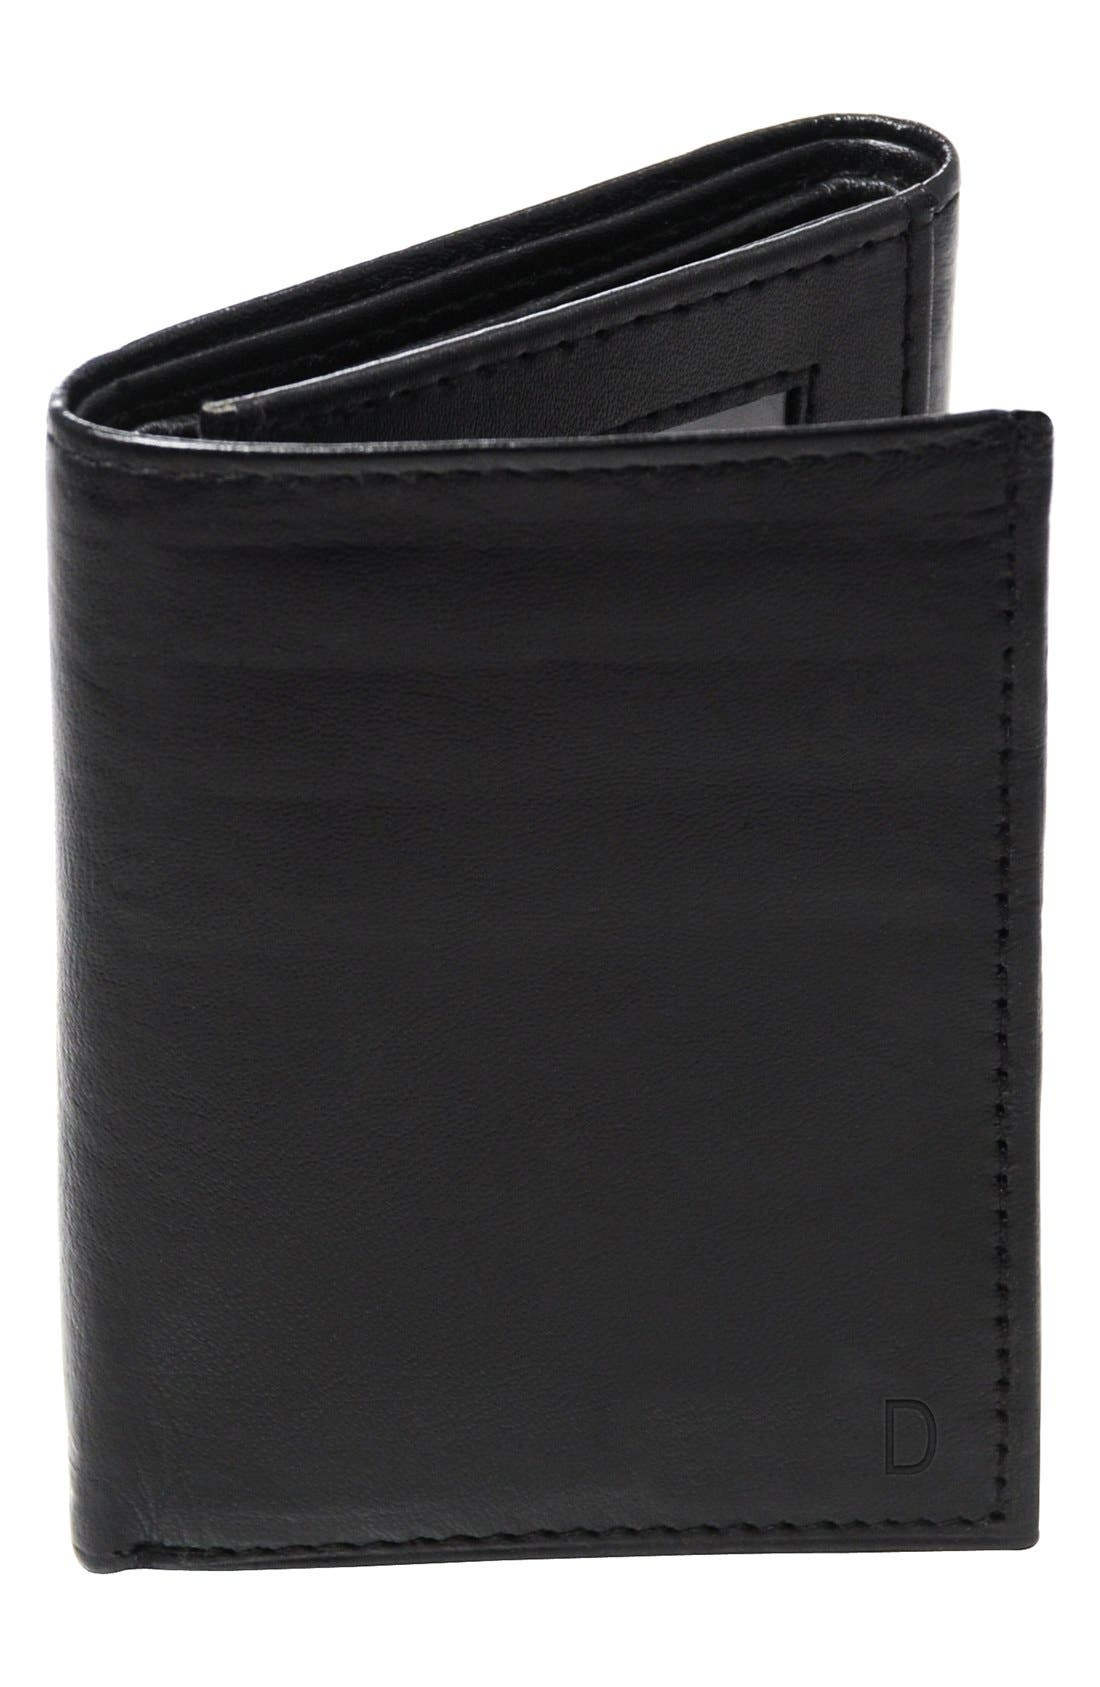 'Oxford' Monogram Leather Trifold Wallet,                             Main thumbnail 1, color,                             005